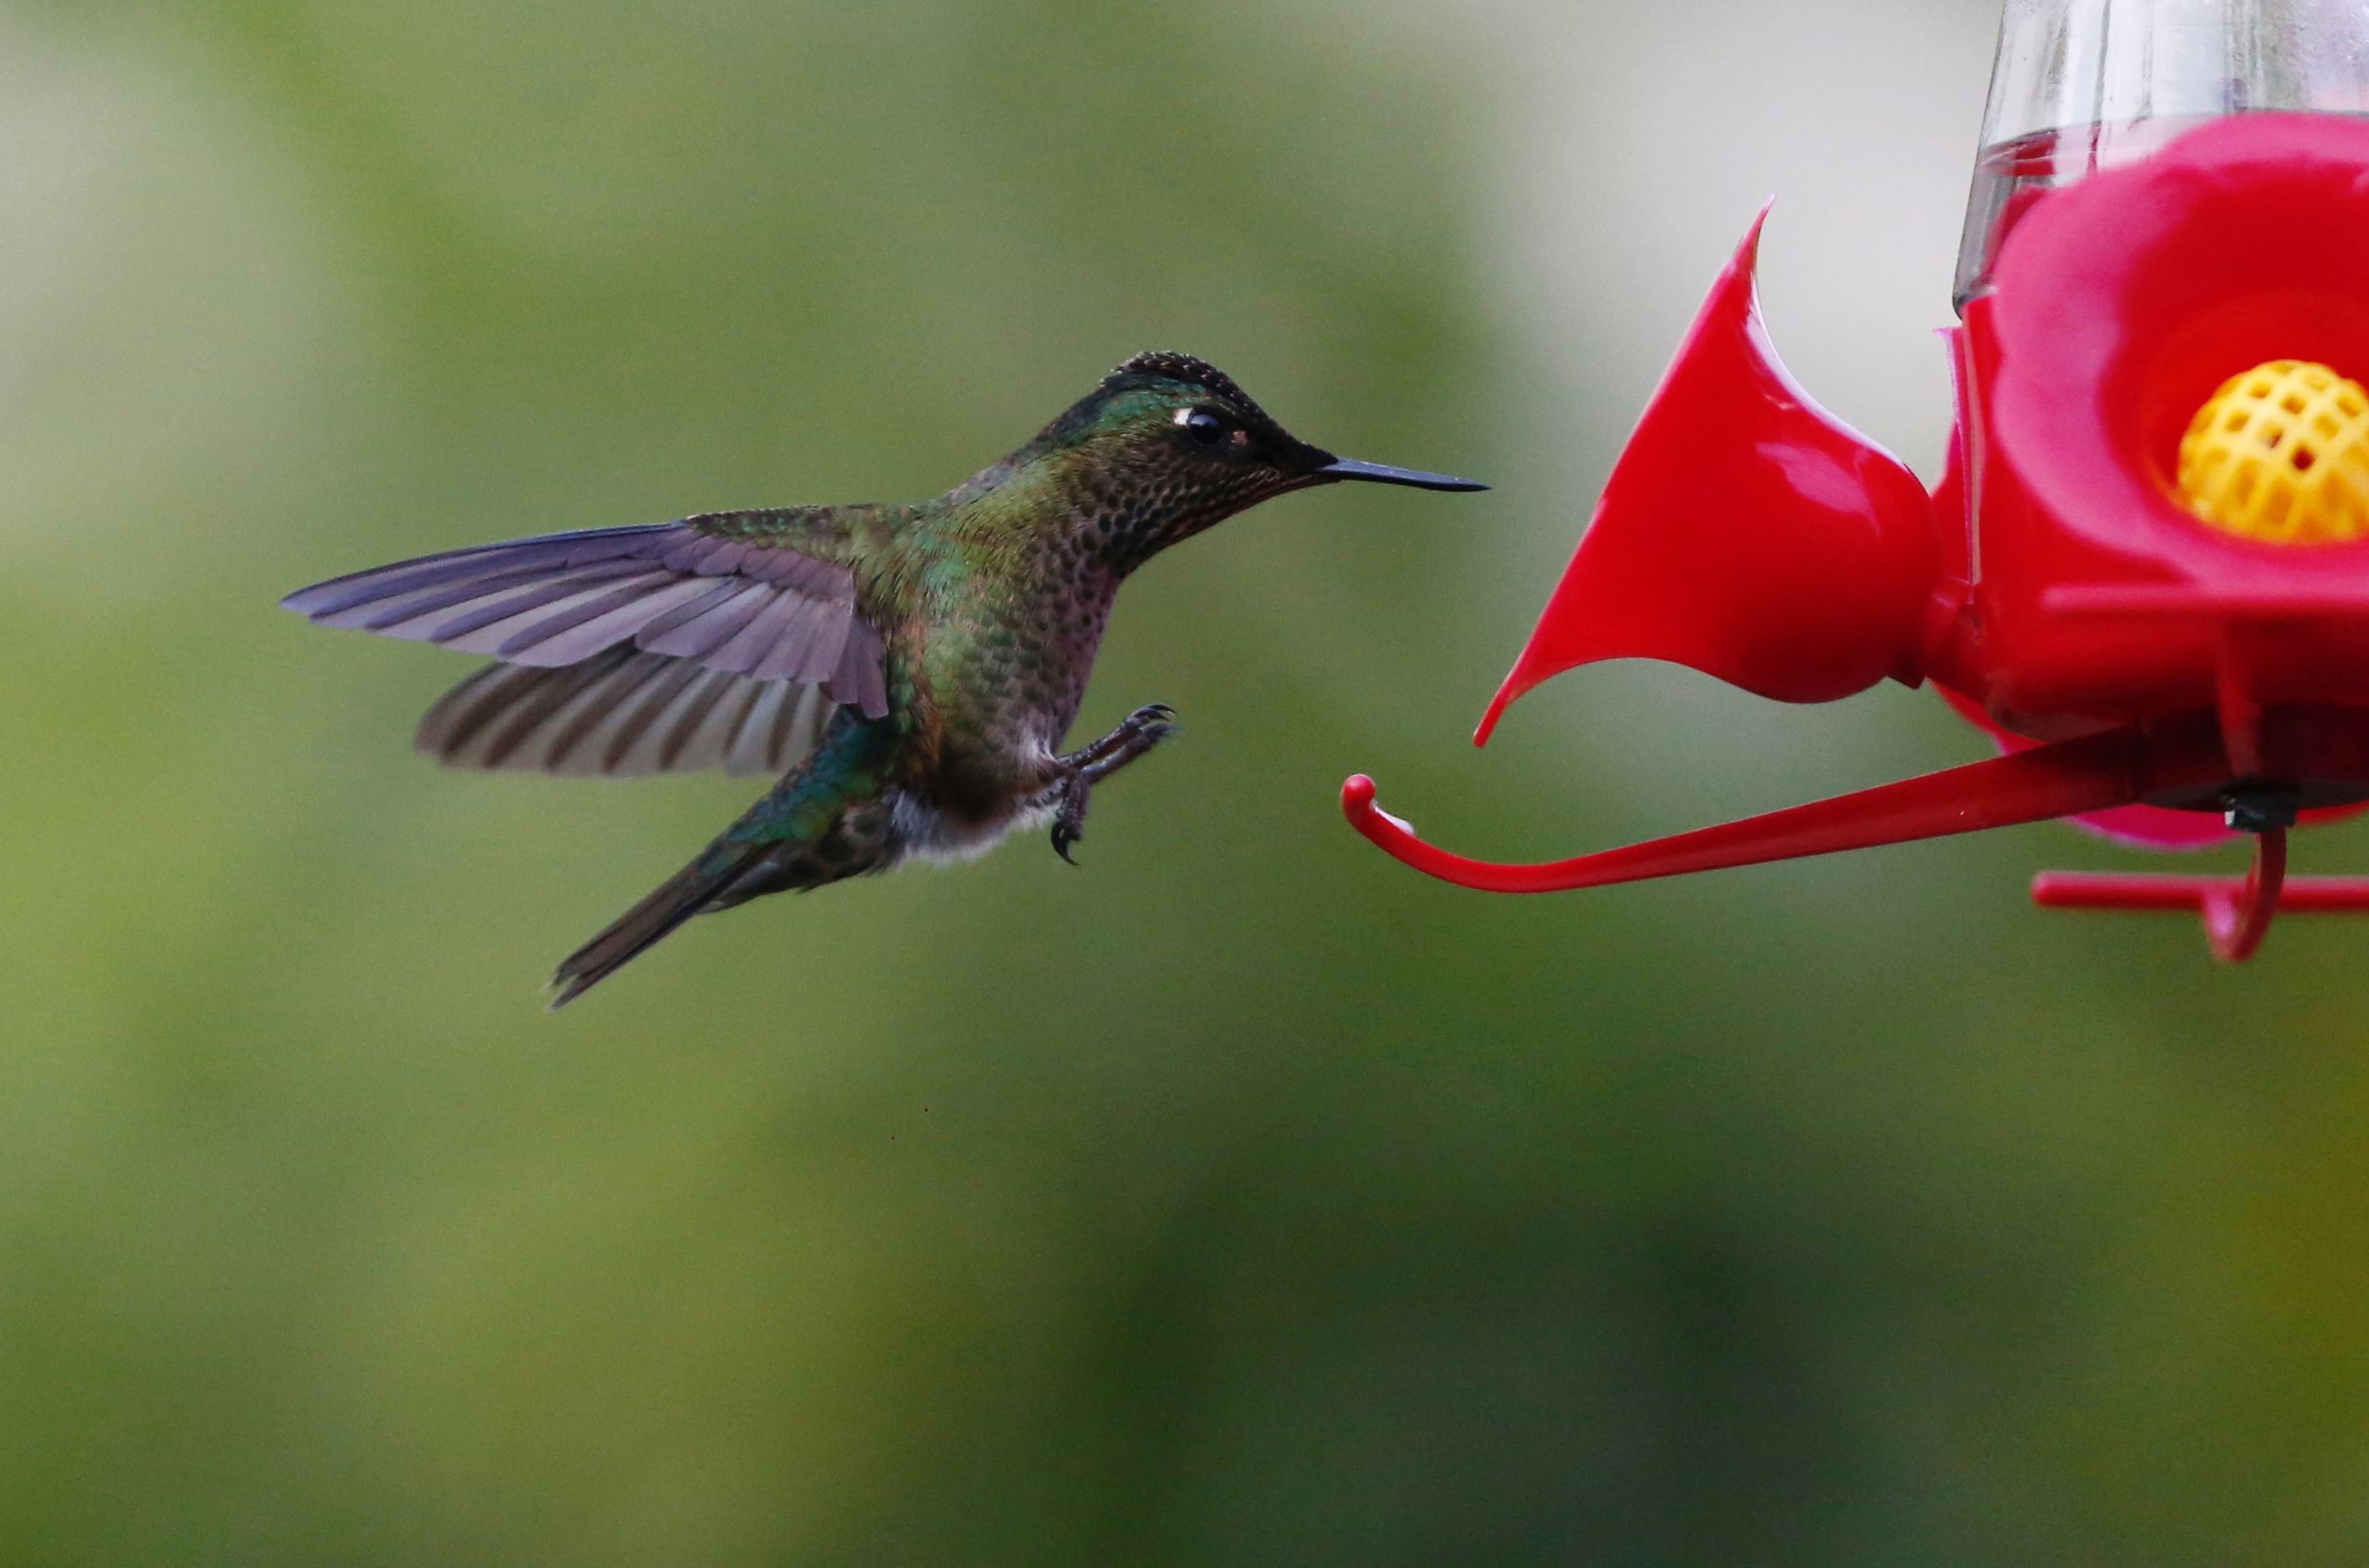 Слайд 29 из 67: A humming bird is seen landing on a bird feeder at a public square in Santiago, Chile, June 19, 2016.